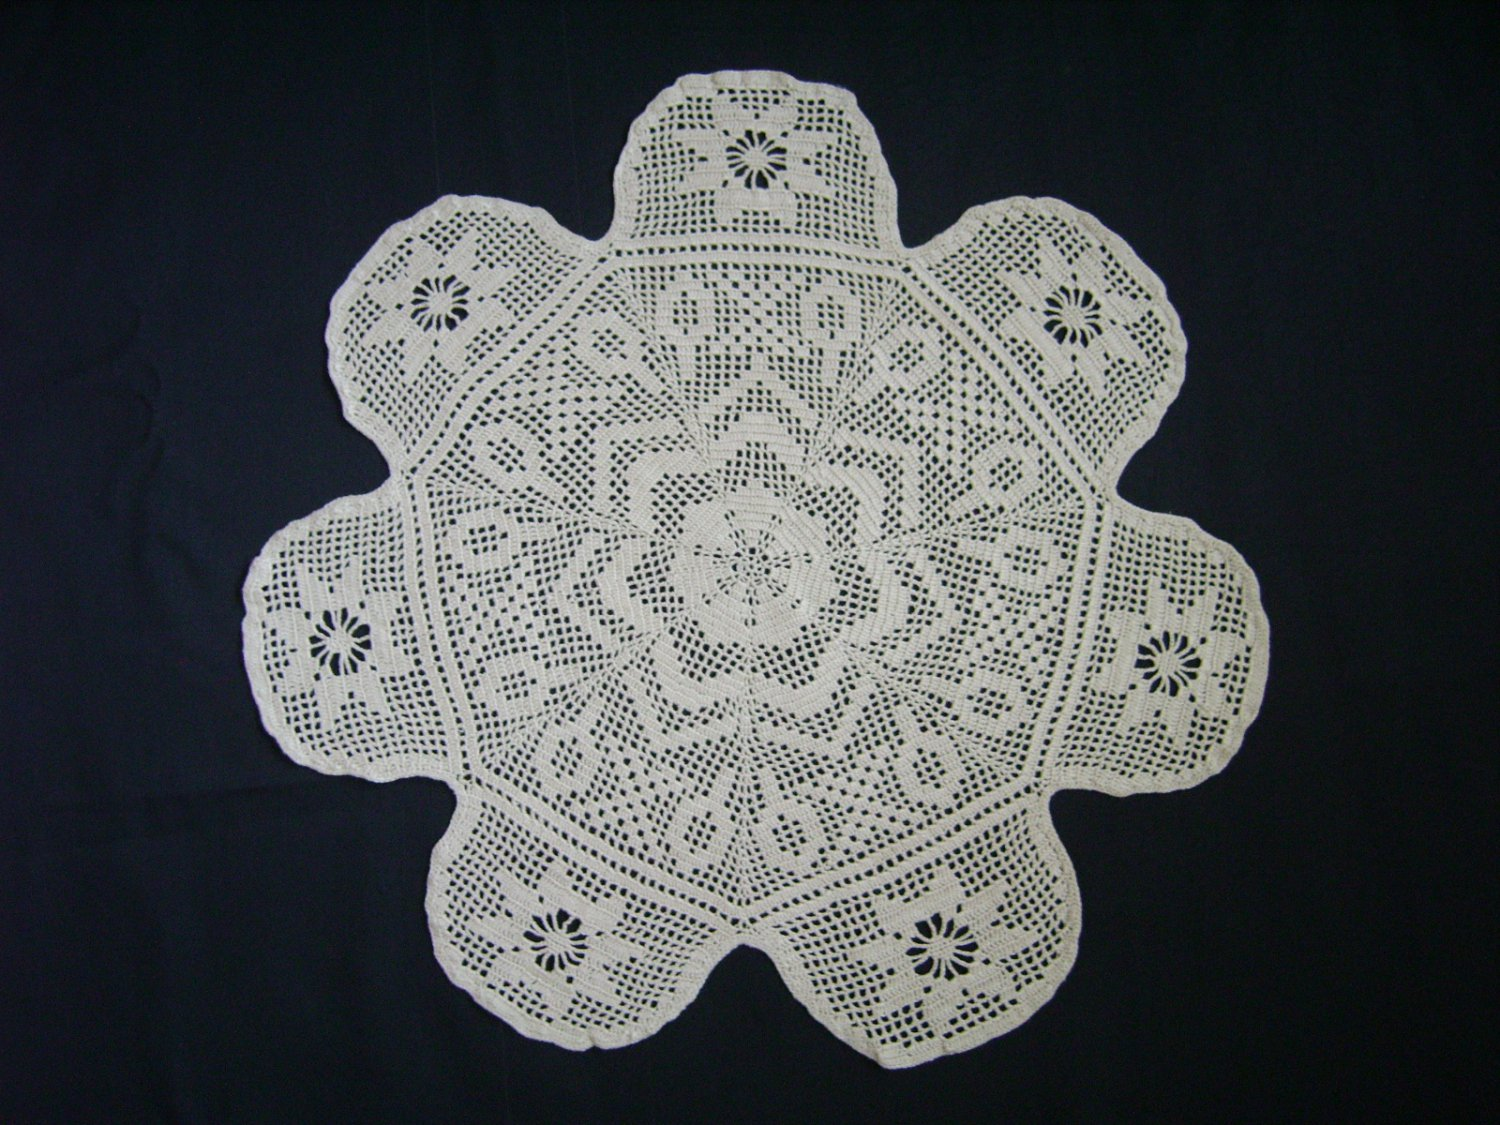 Hand crocheted ecru rainbow star doily.